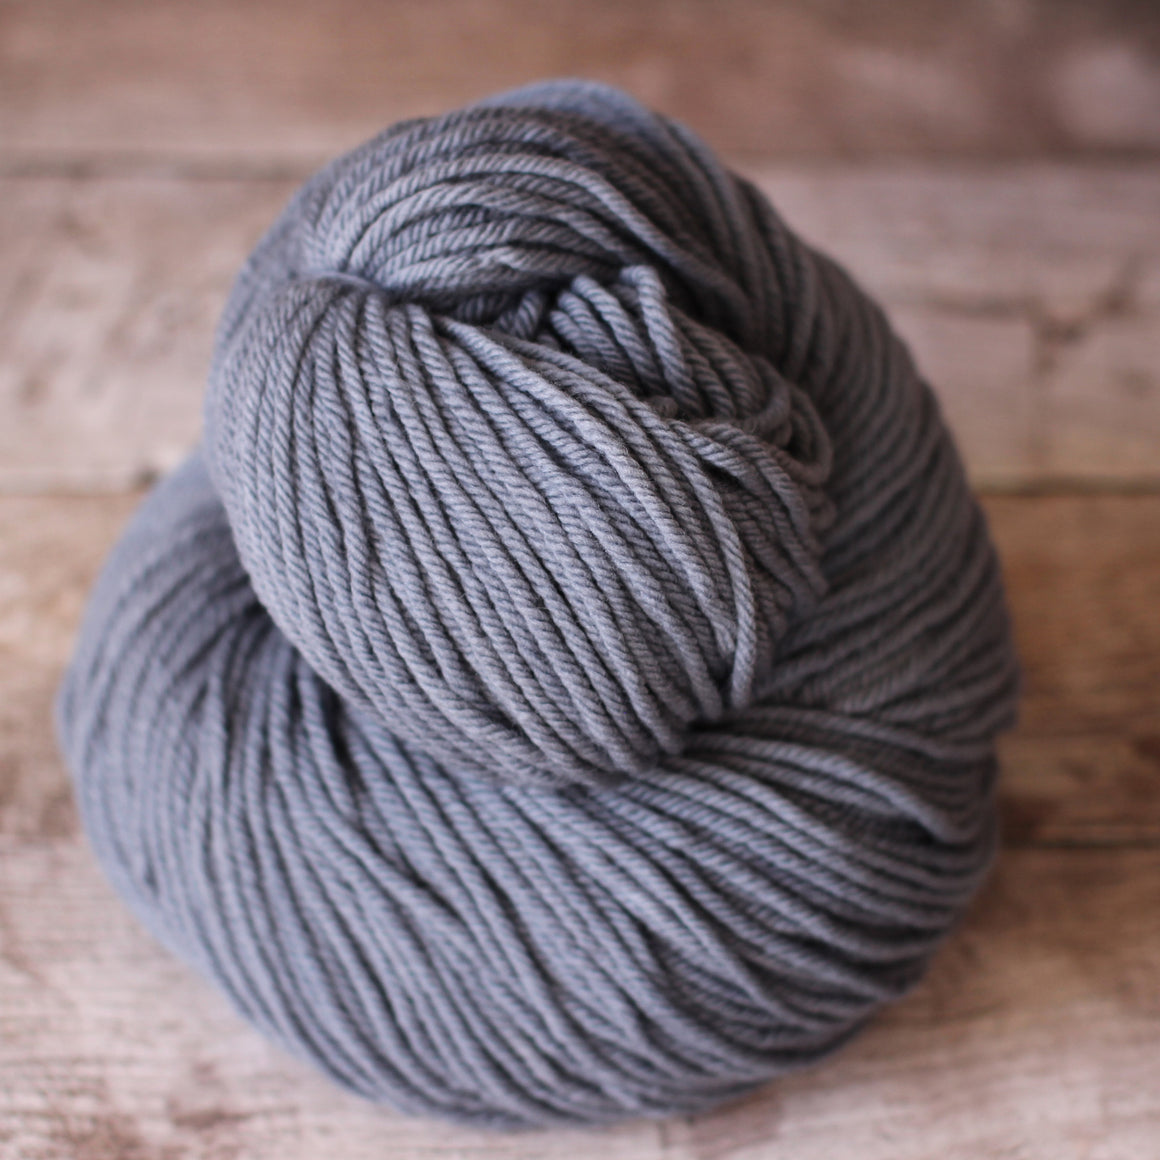 White Gum Wool 8ply Yarn - Kieran